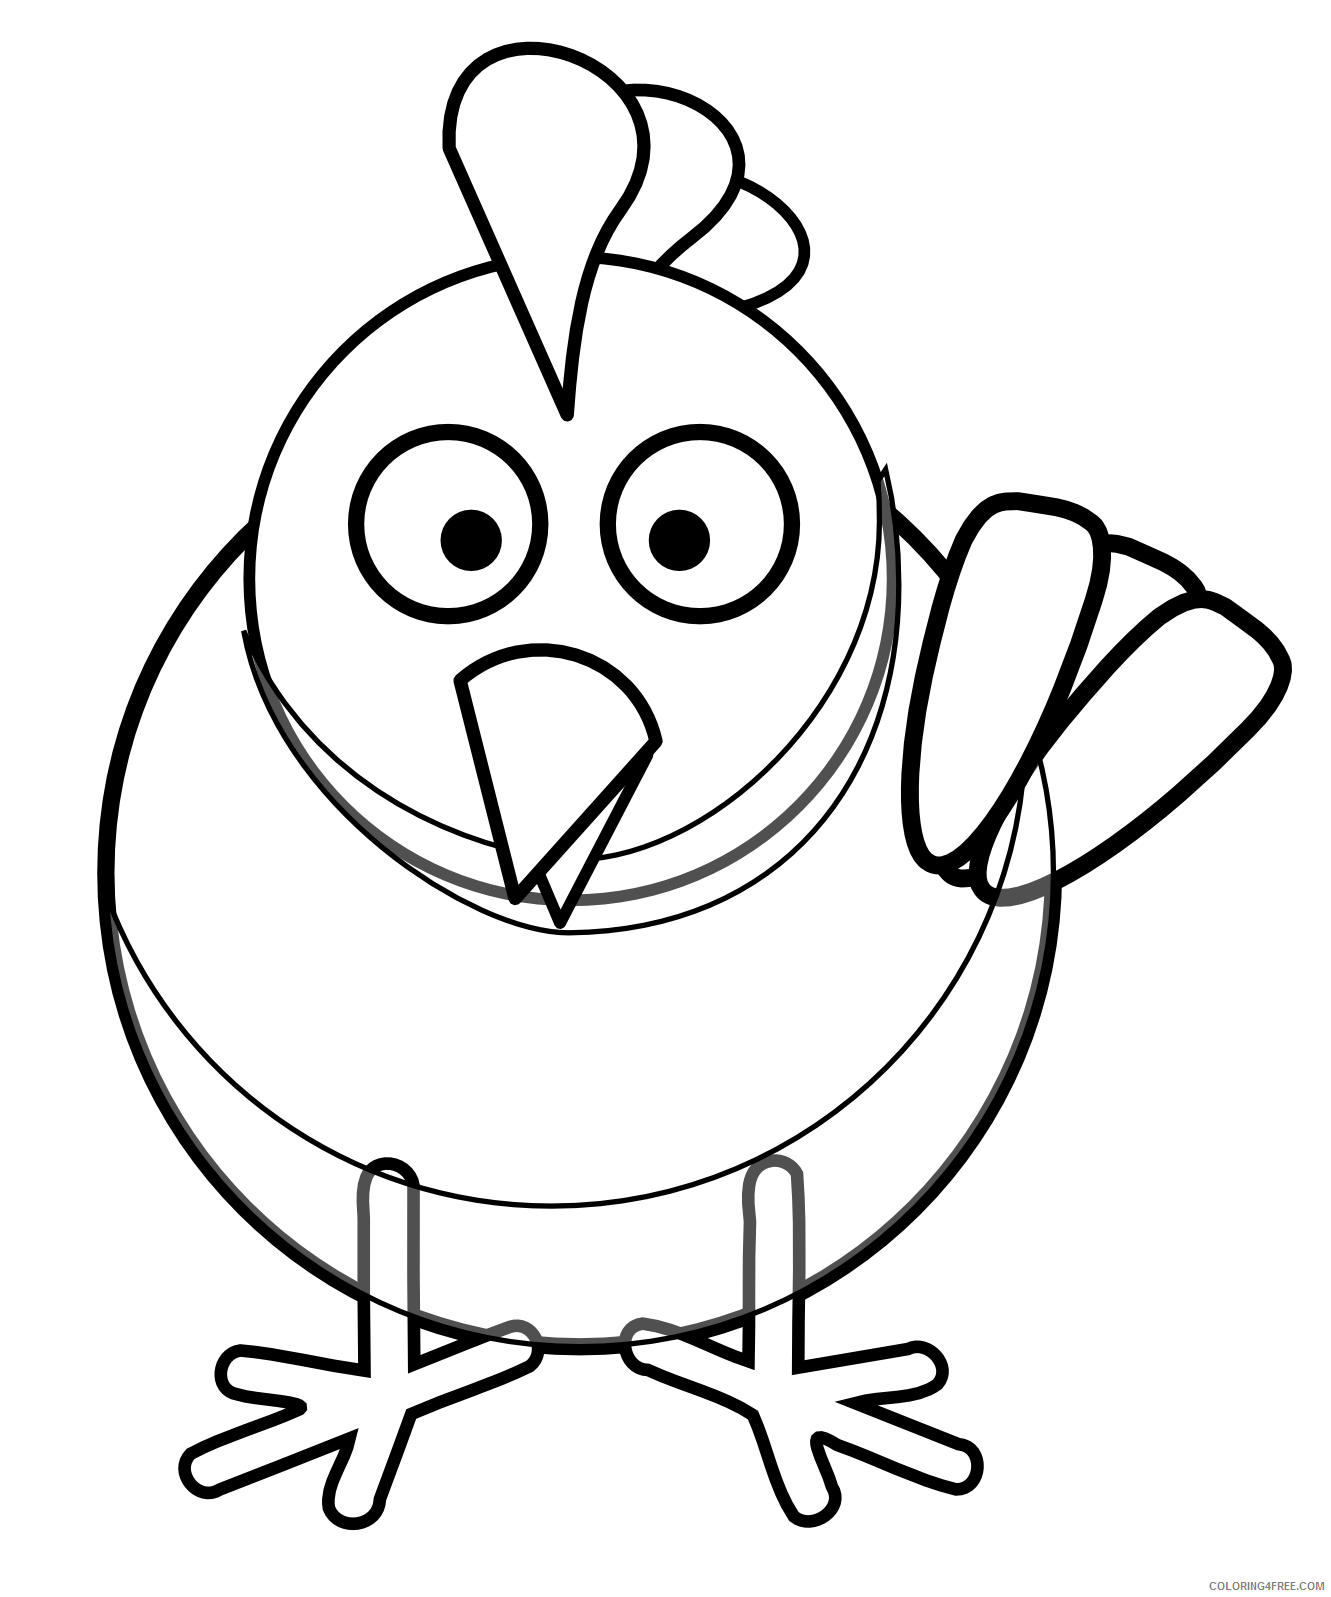 Black and White Chicken Coloring Pages chicken egg bfree Printable Coloring4free